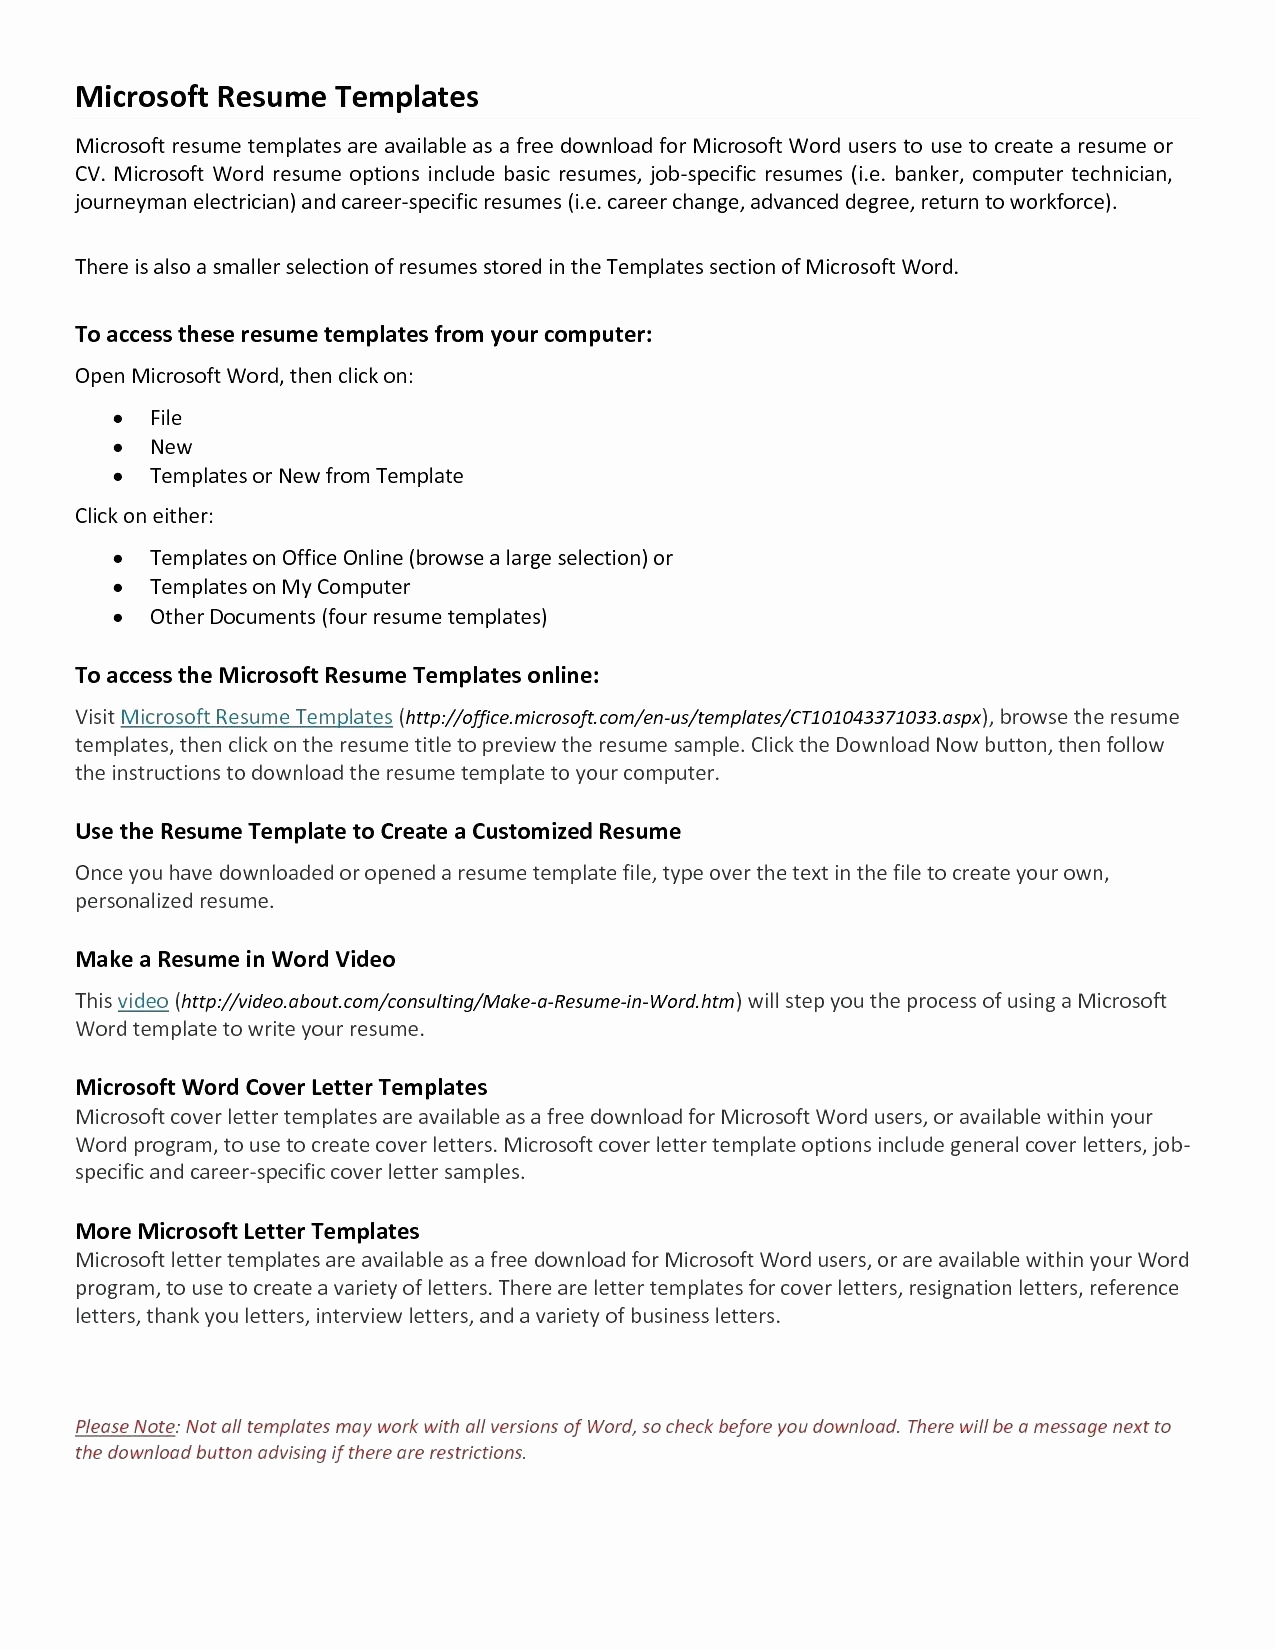 Free Online Resume Cover Letter Template - Free Cover Letter Templates for Resumes Fresh Resume Template